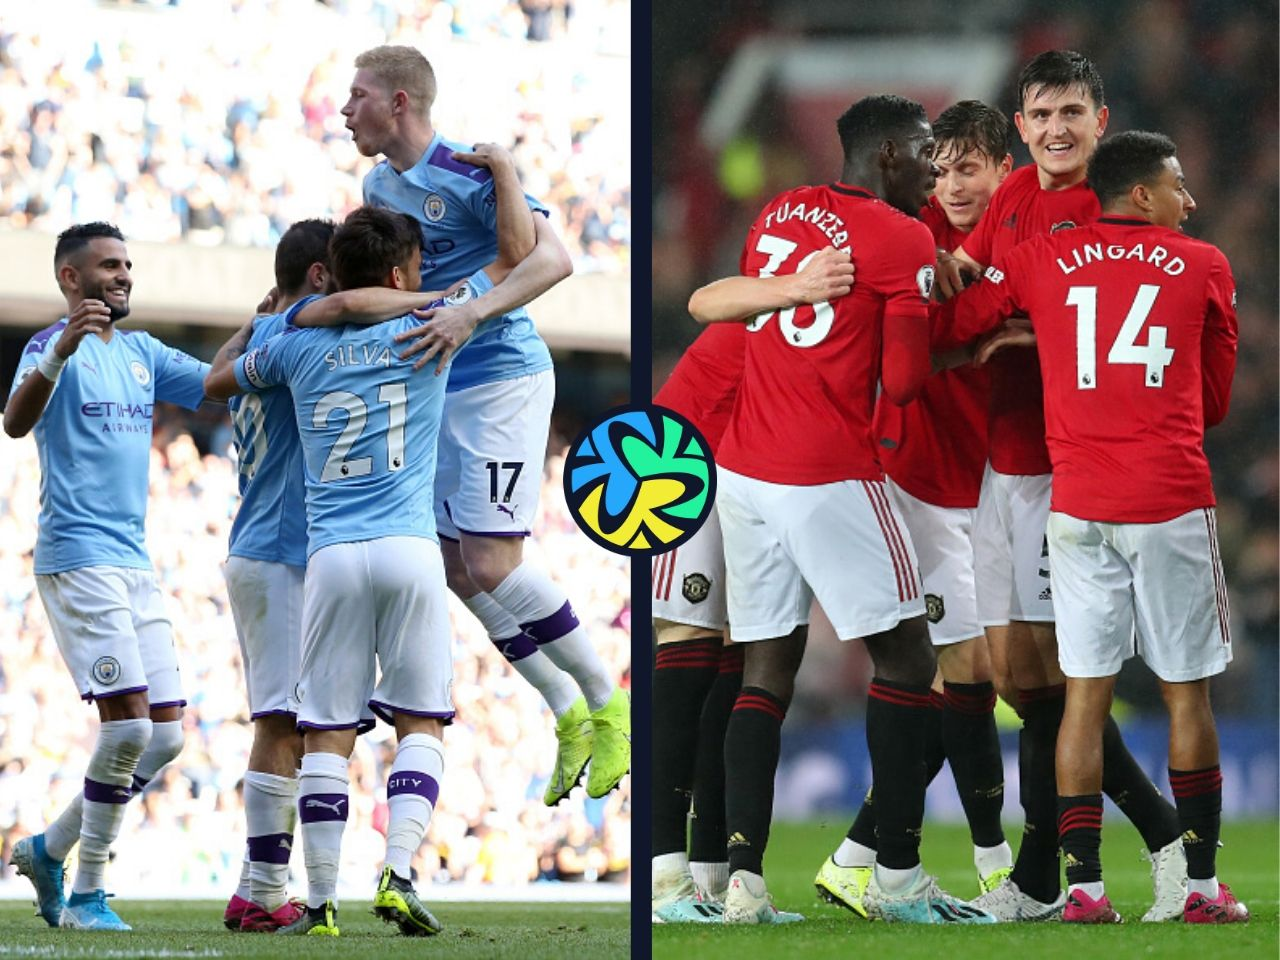 Manchester City vs Manchester United - Premier League